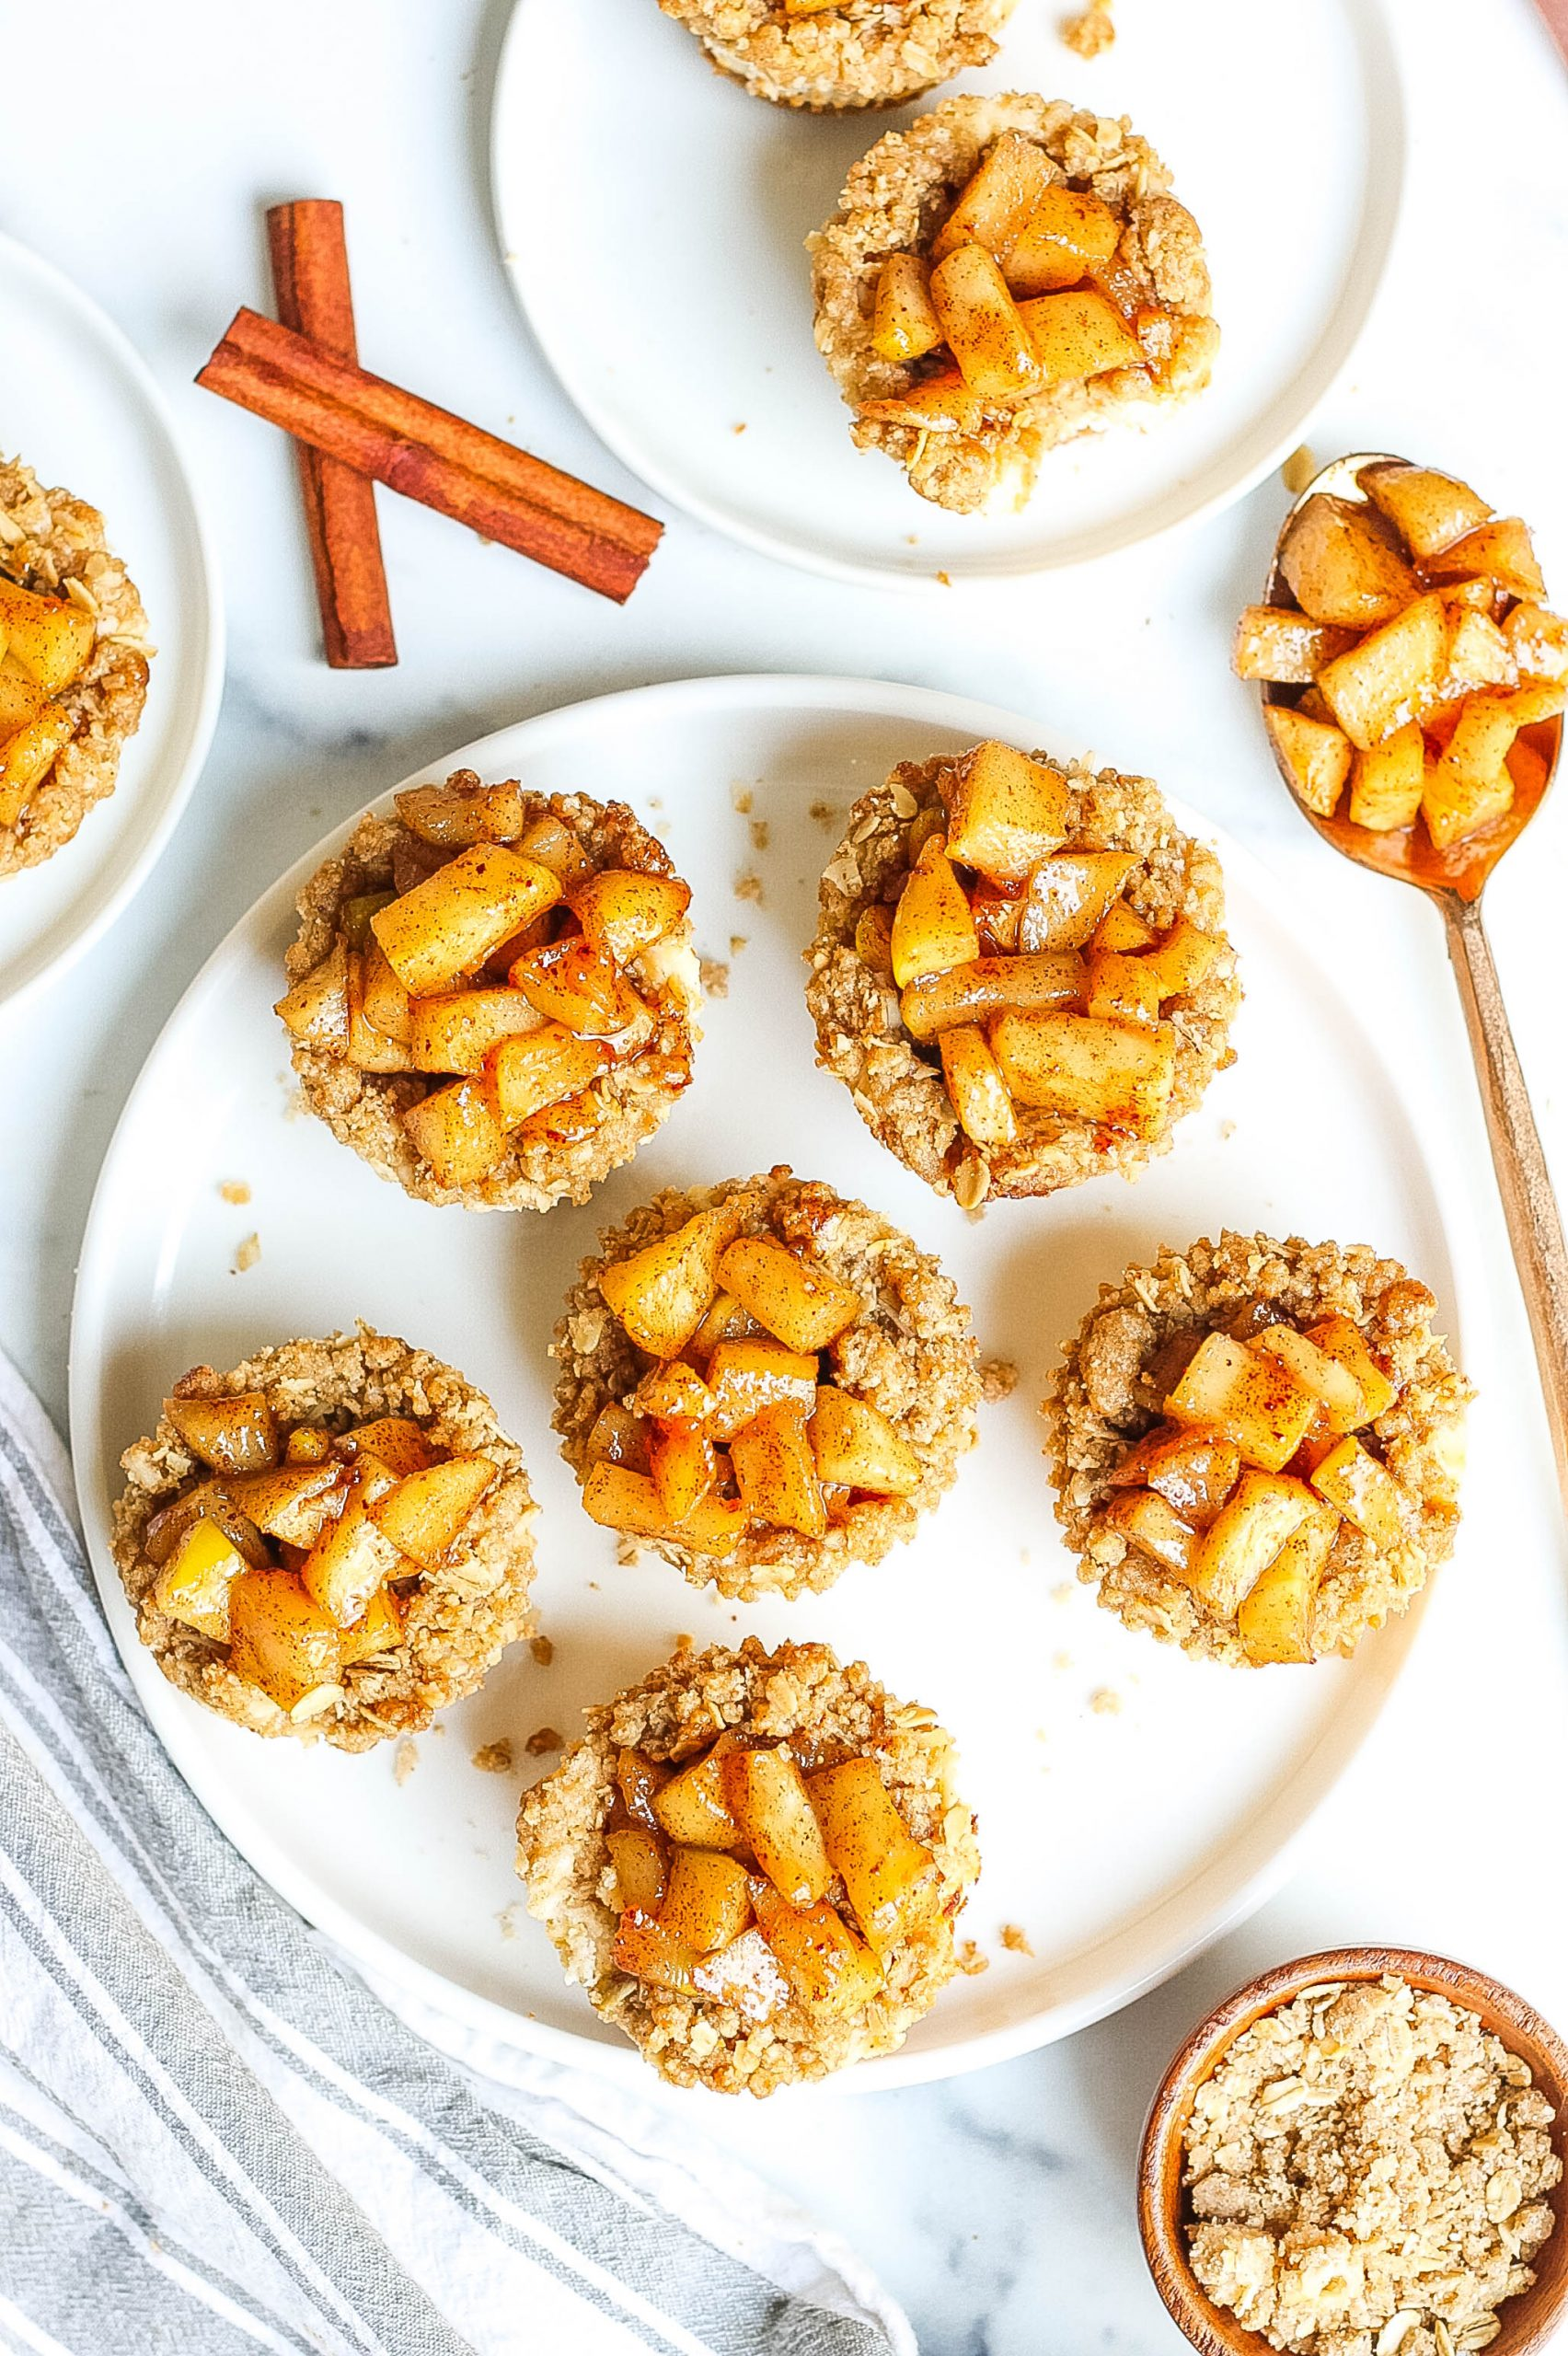 Apple Pie Cheesecake Bites with apple streusel topping